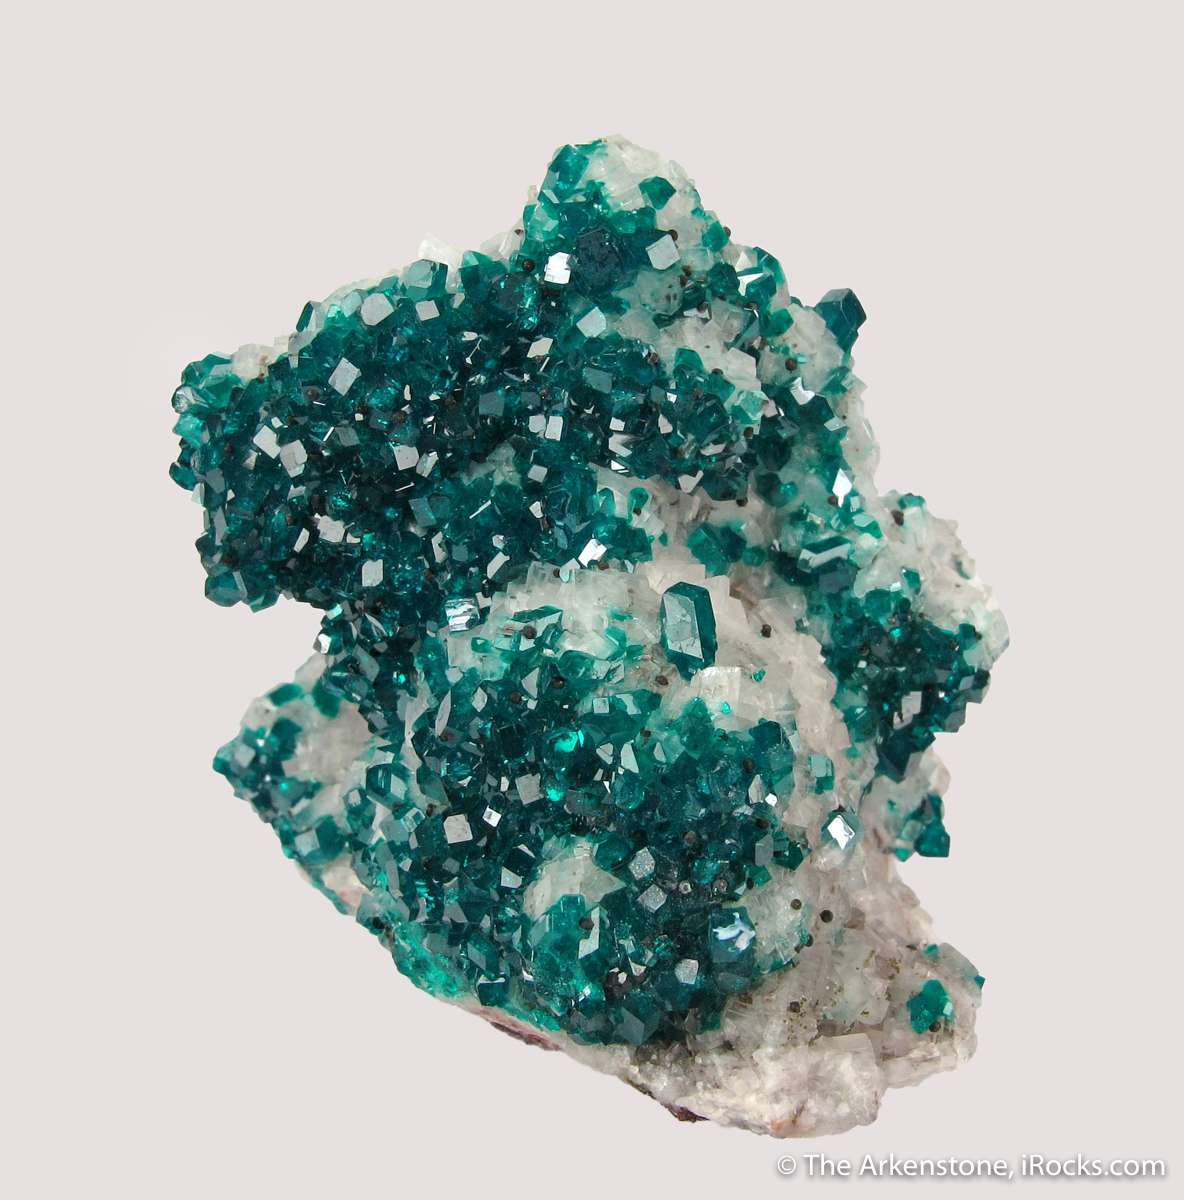 Very good classic Tsumeb combo Dioptase Calcite Both species